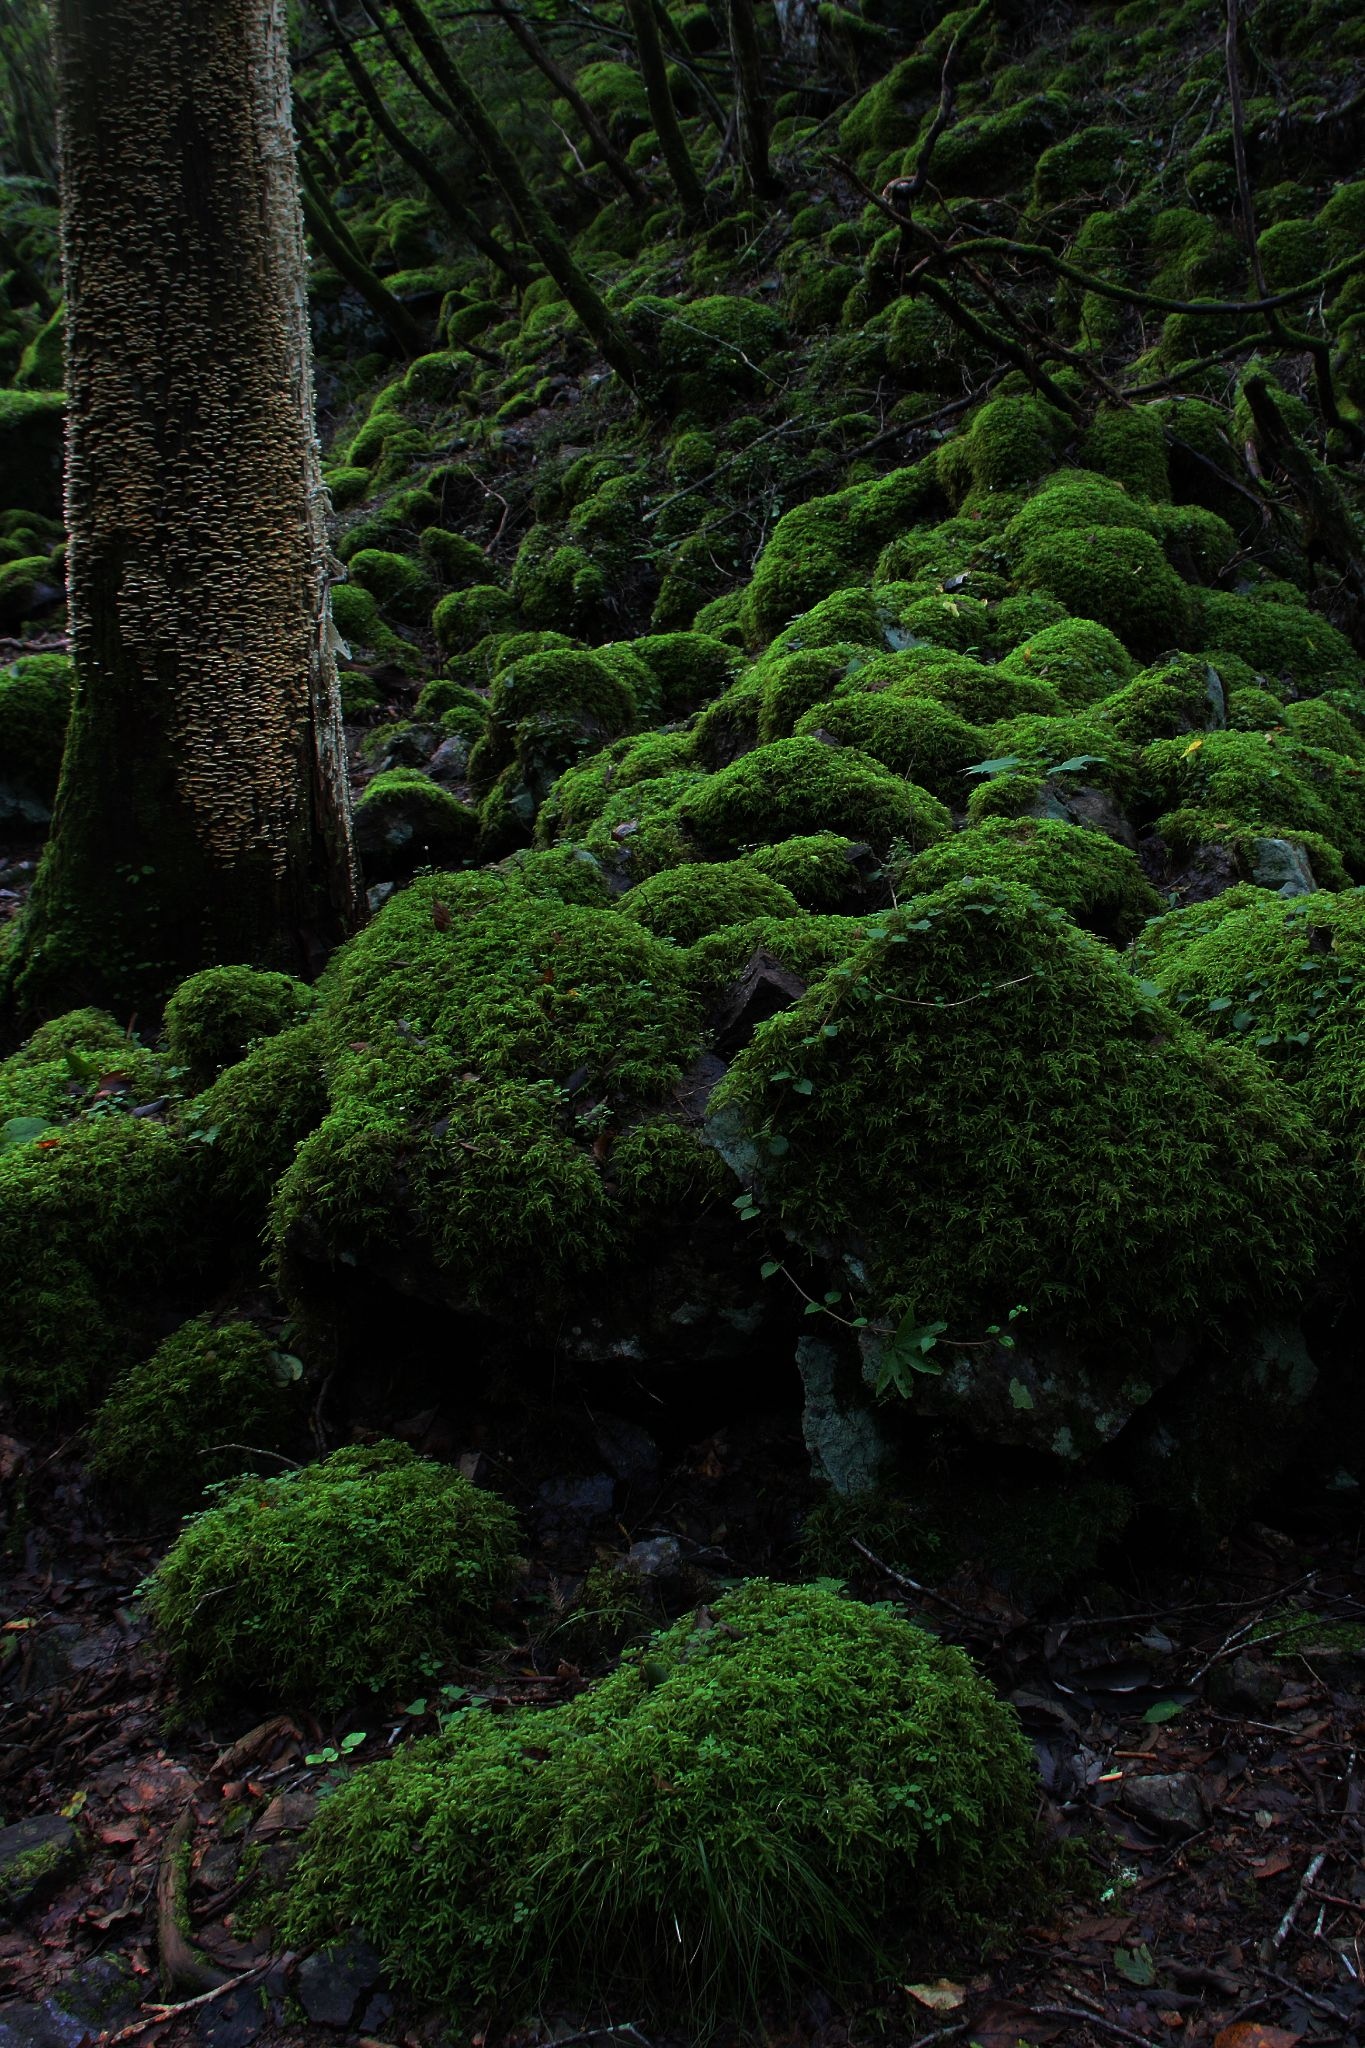 To among the moss by Koji Ishimoto